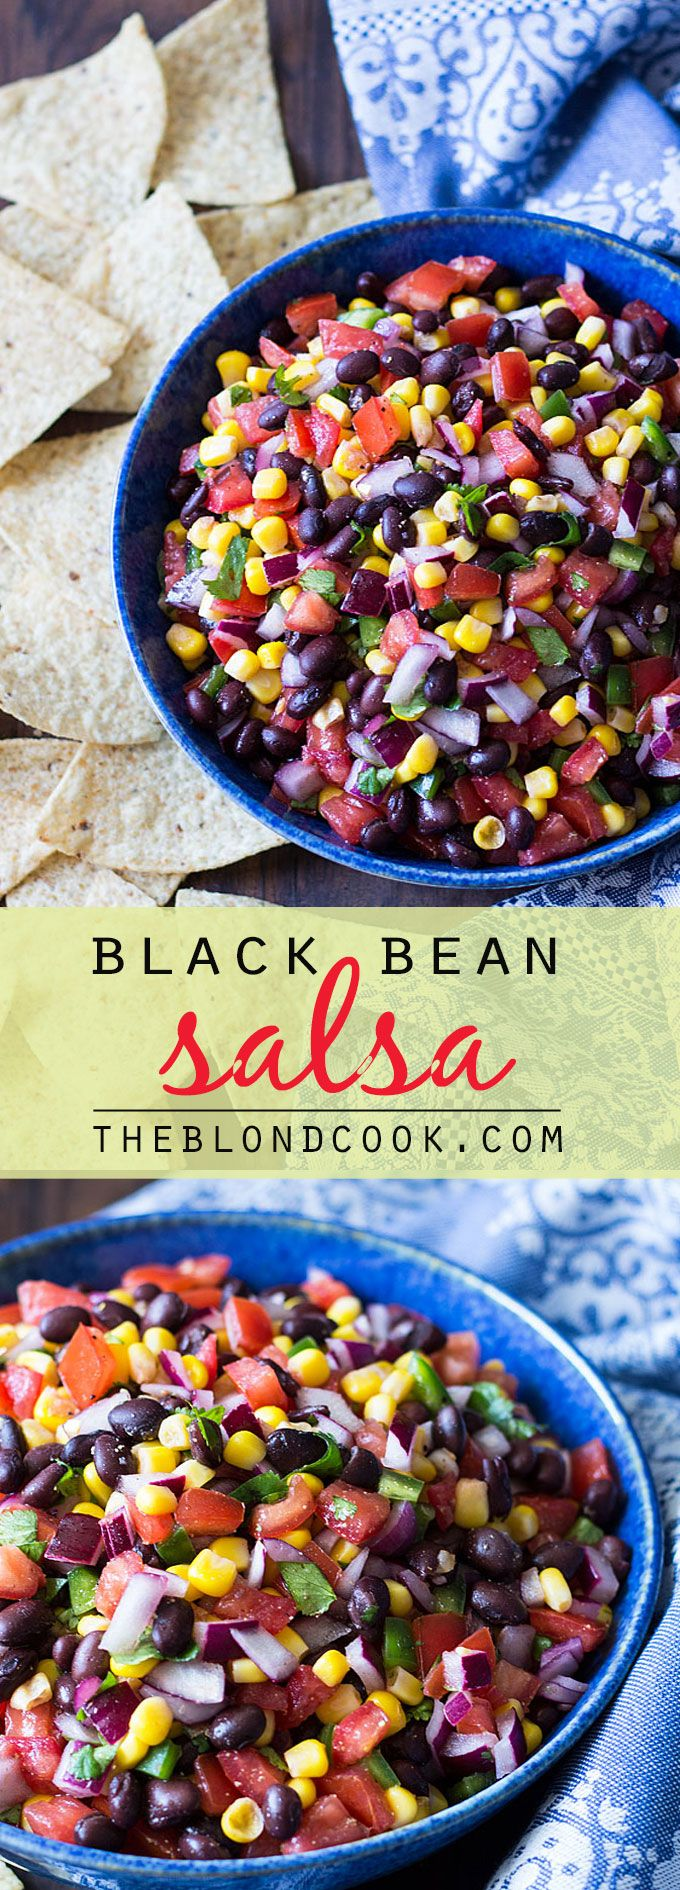 Black Bean Salsa - A hearty and healthy salsa!                                                                                                                                                                                 More